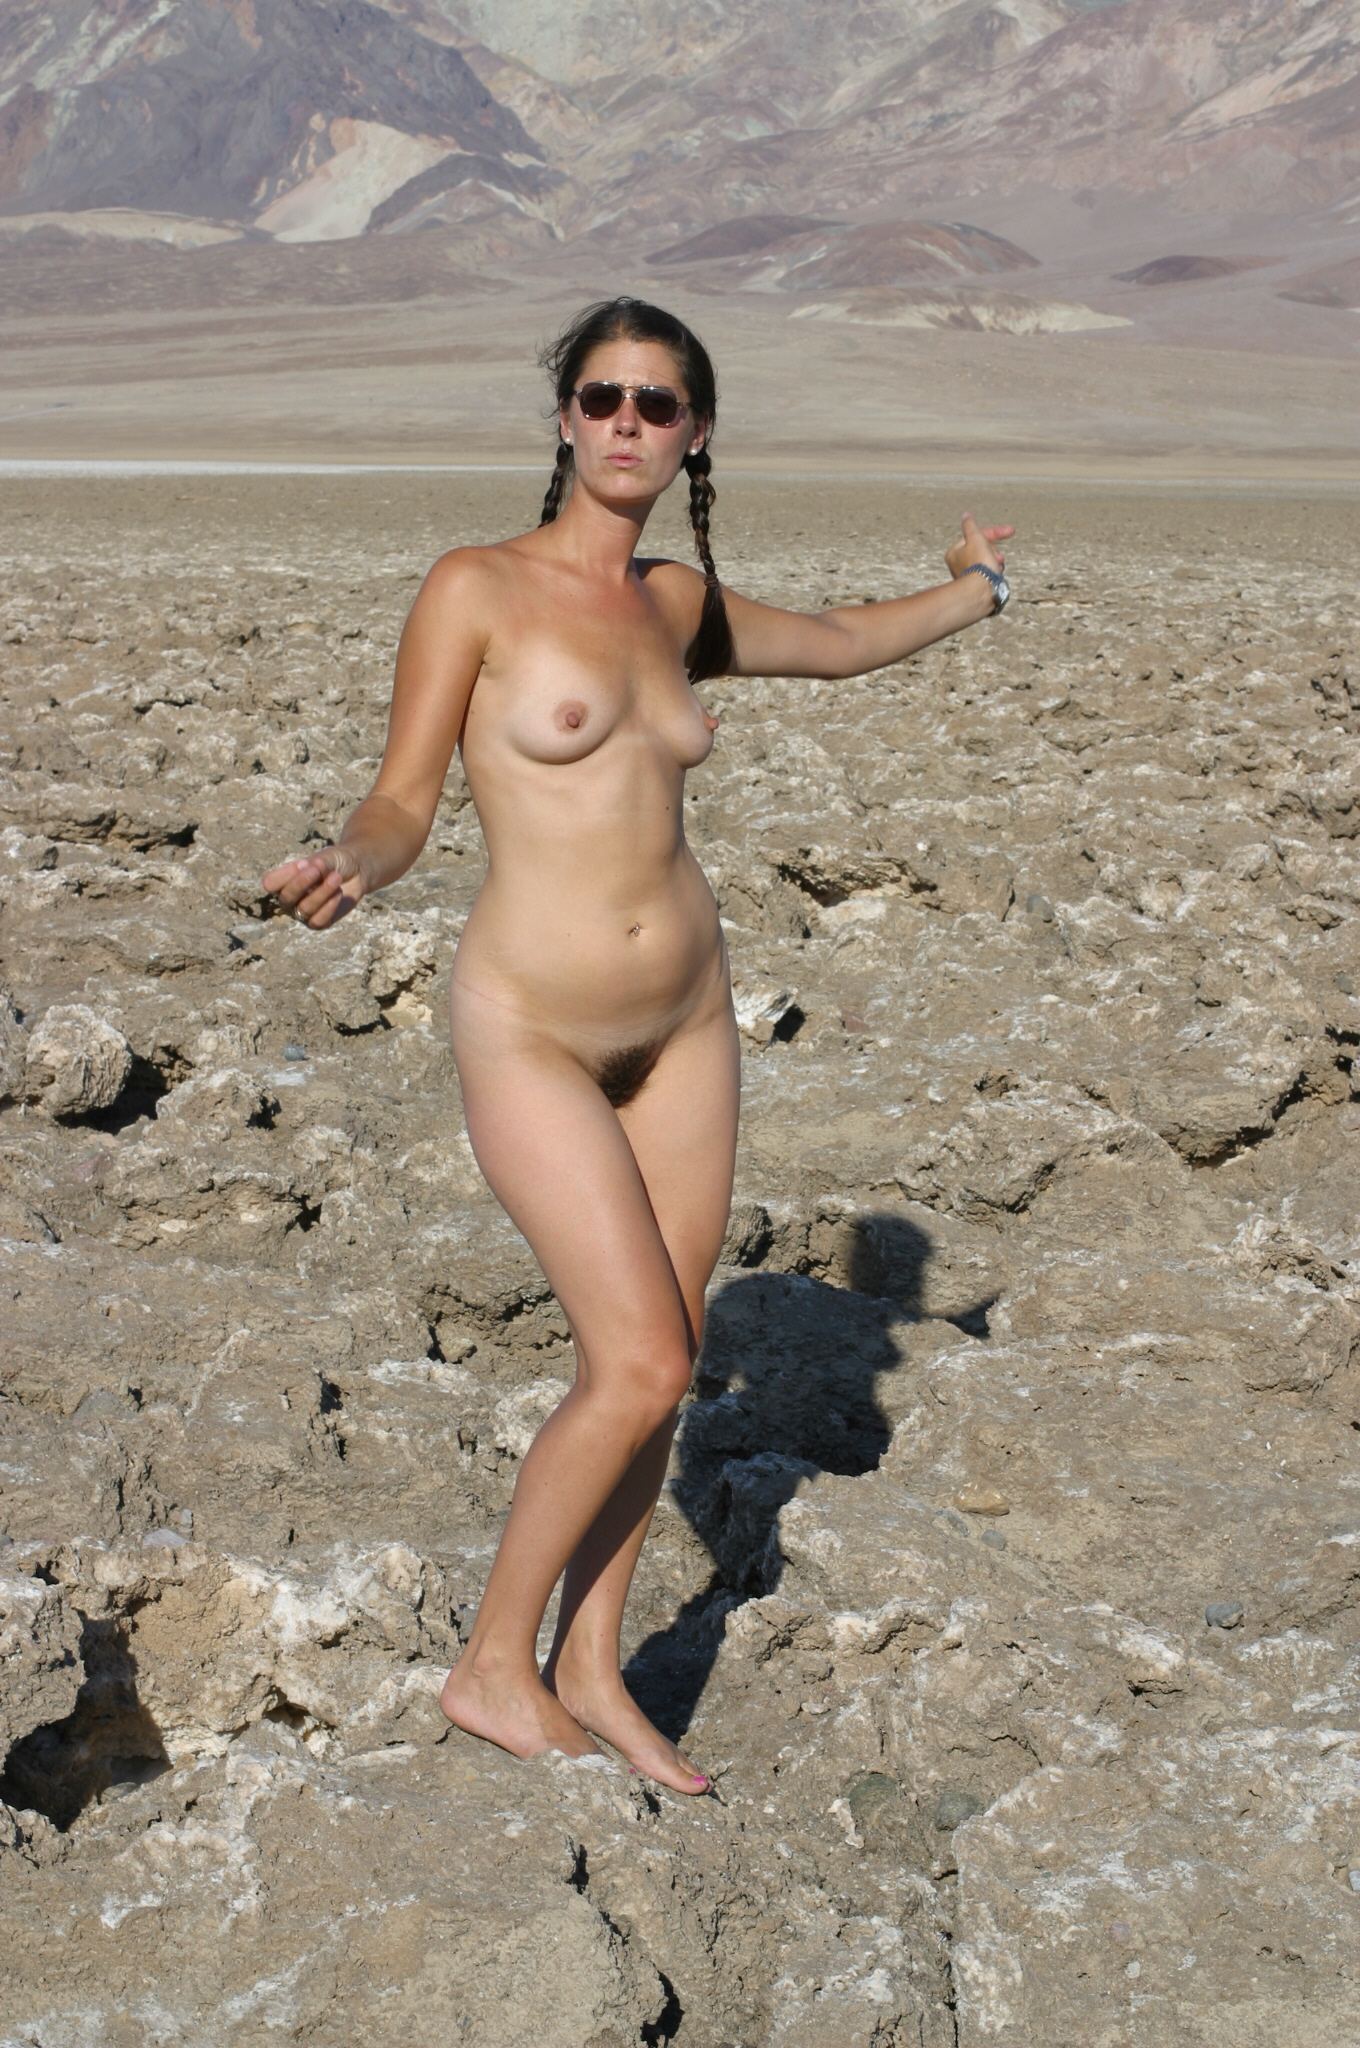 Join. happens. the valley nude girls pics